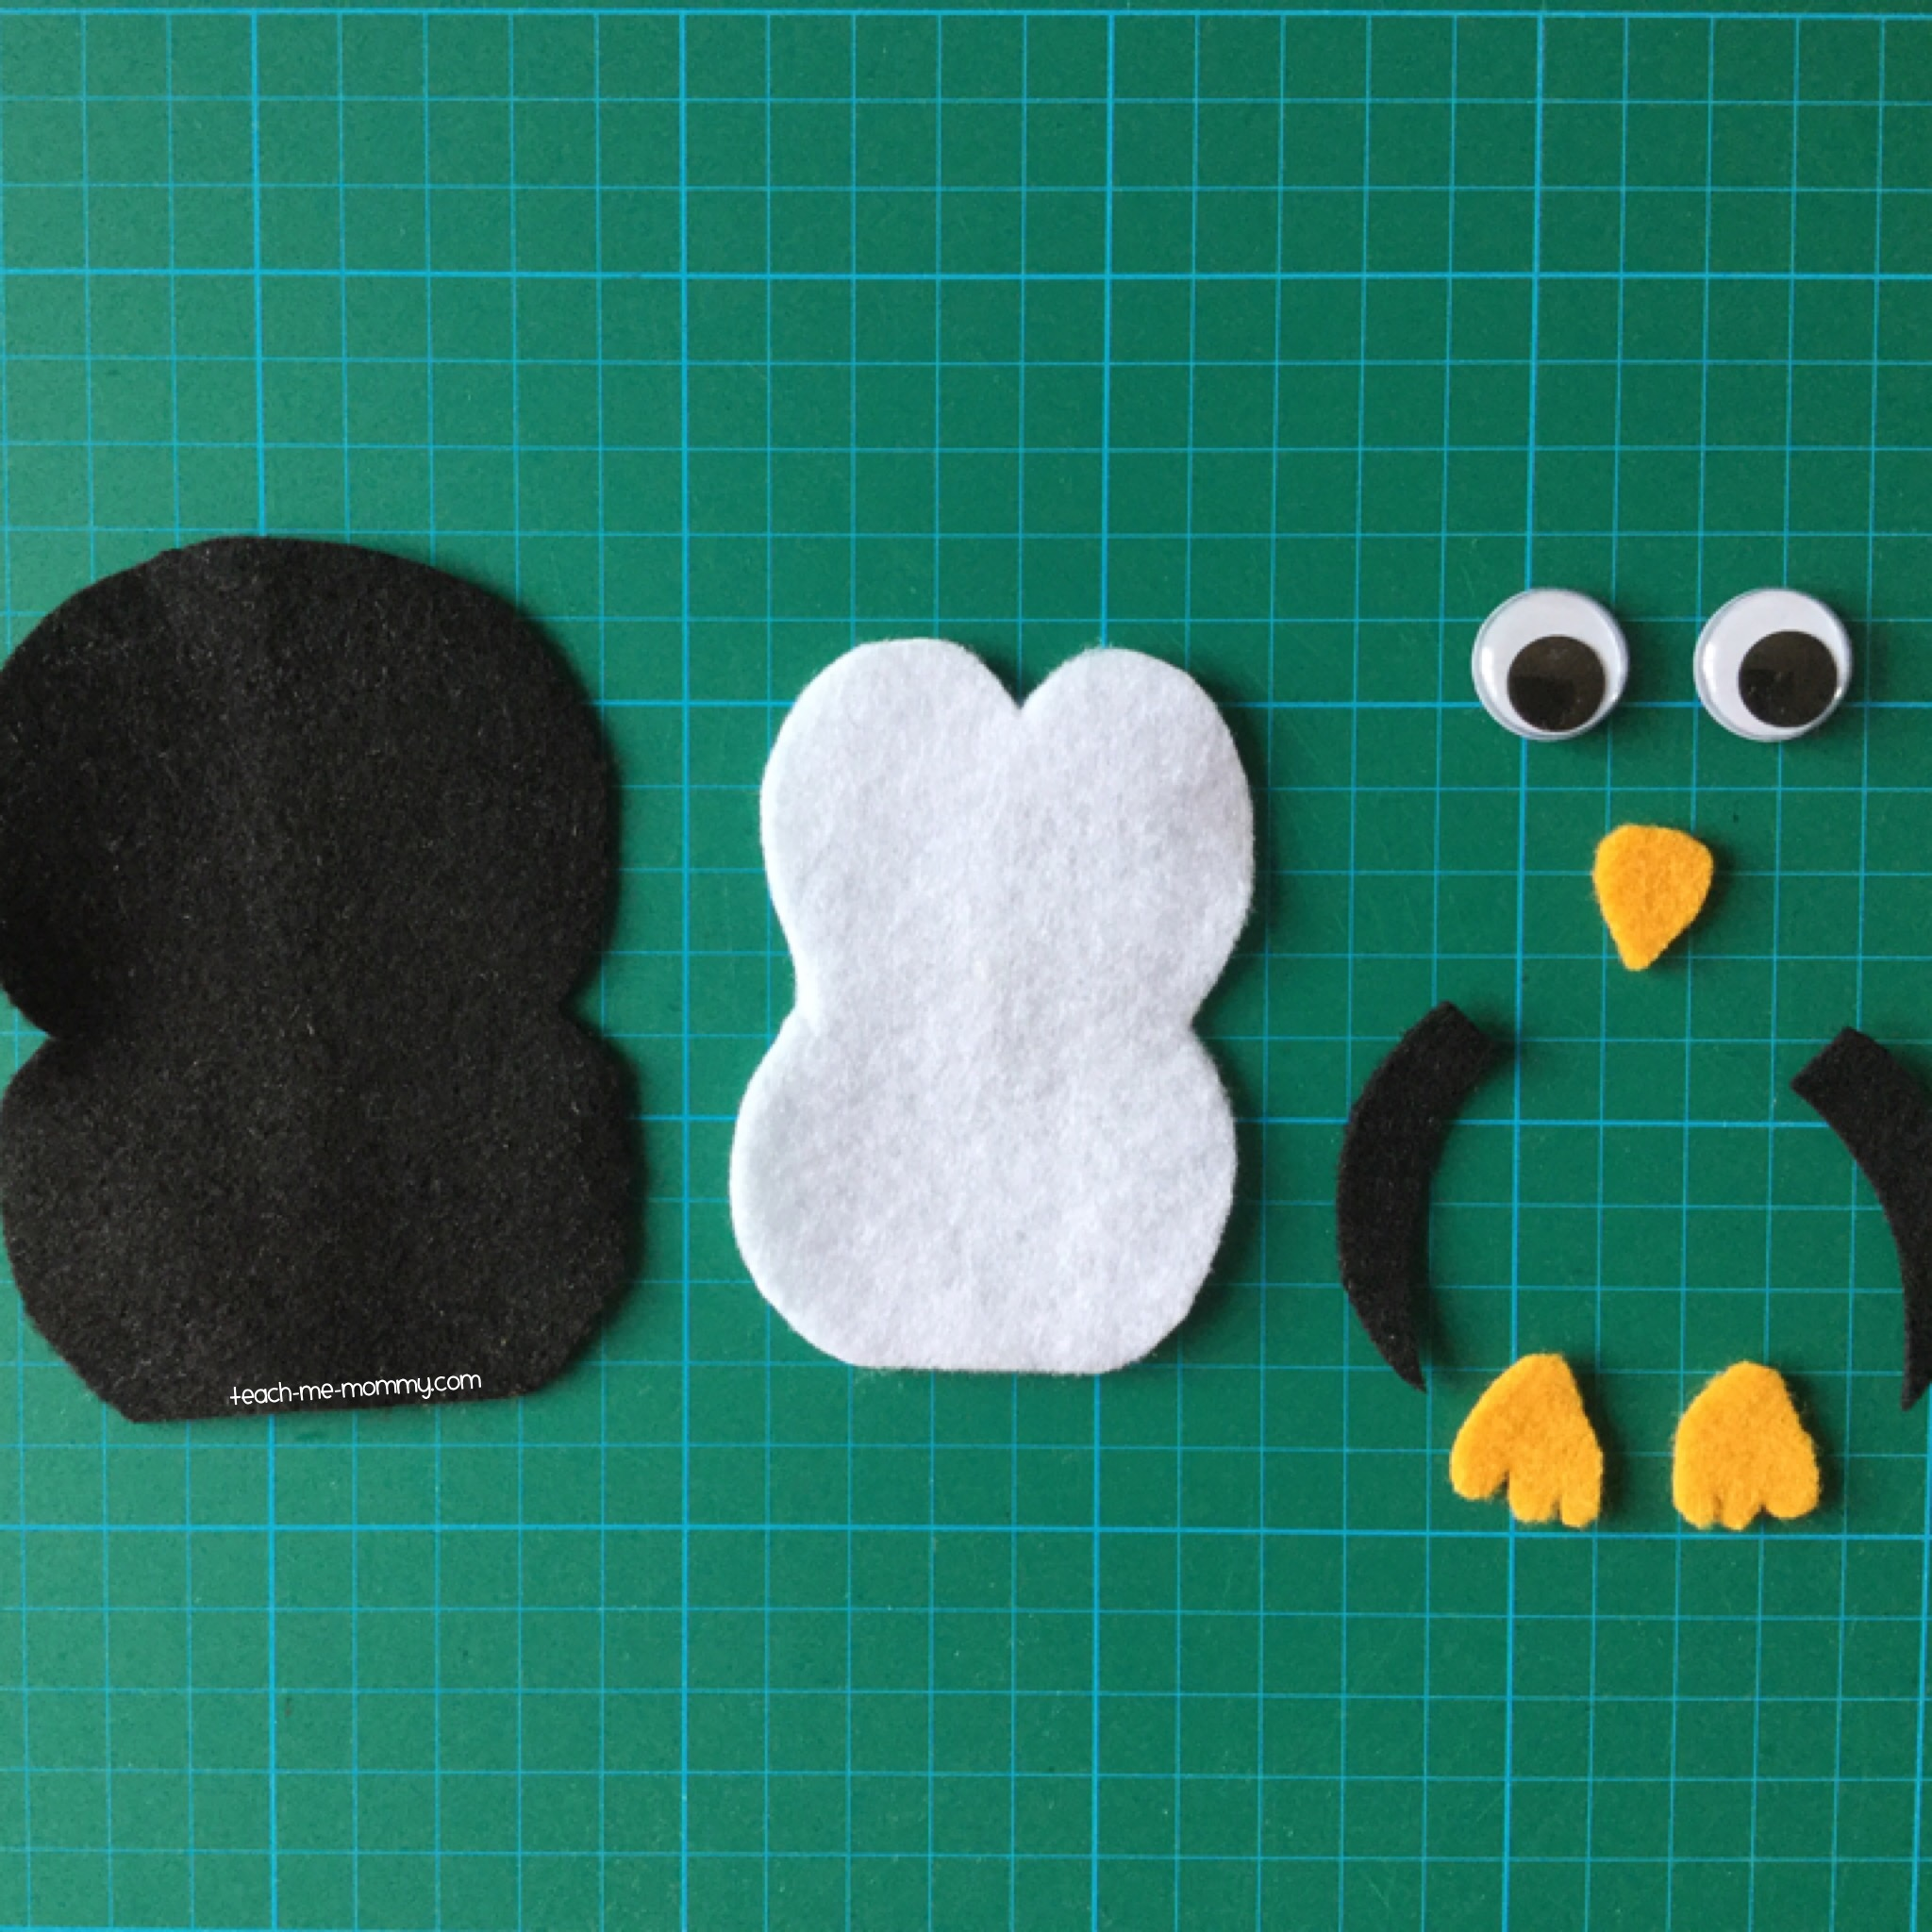 Penguin pieces